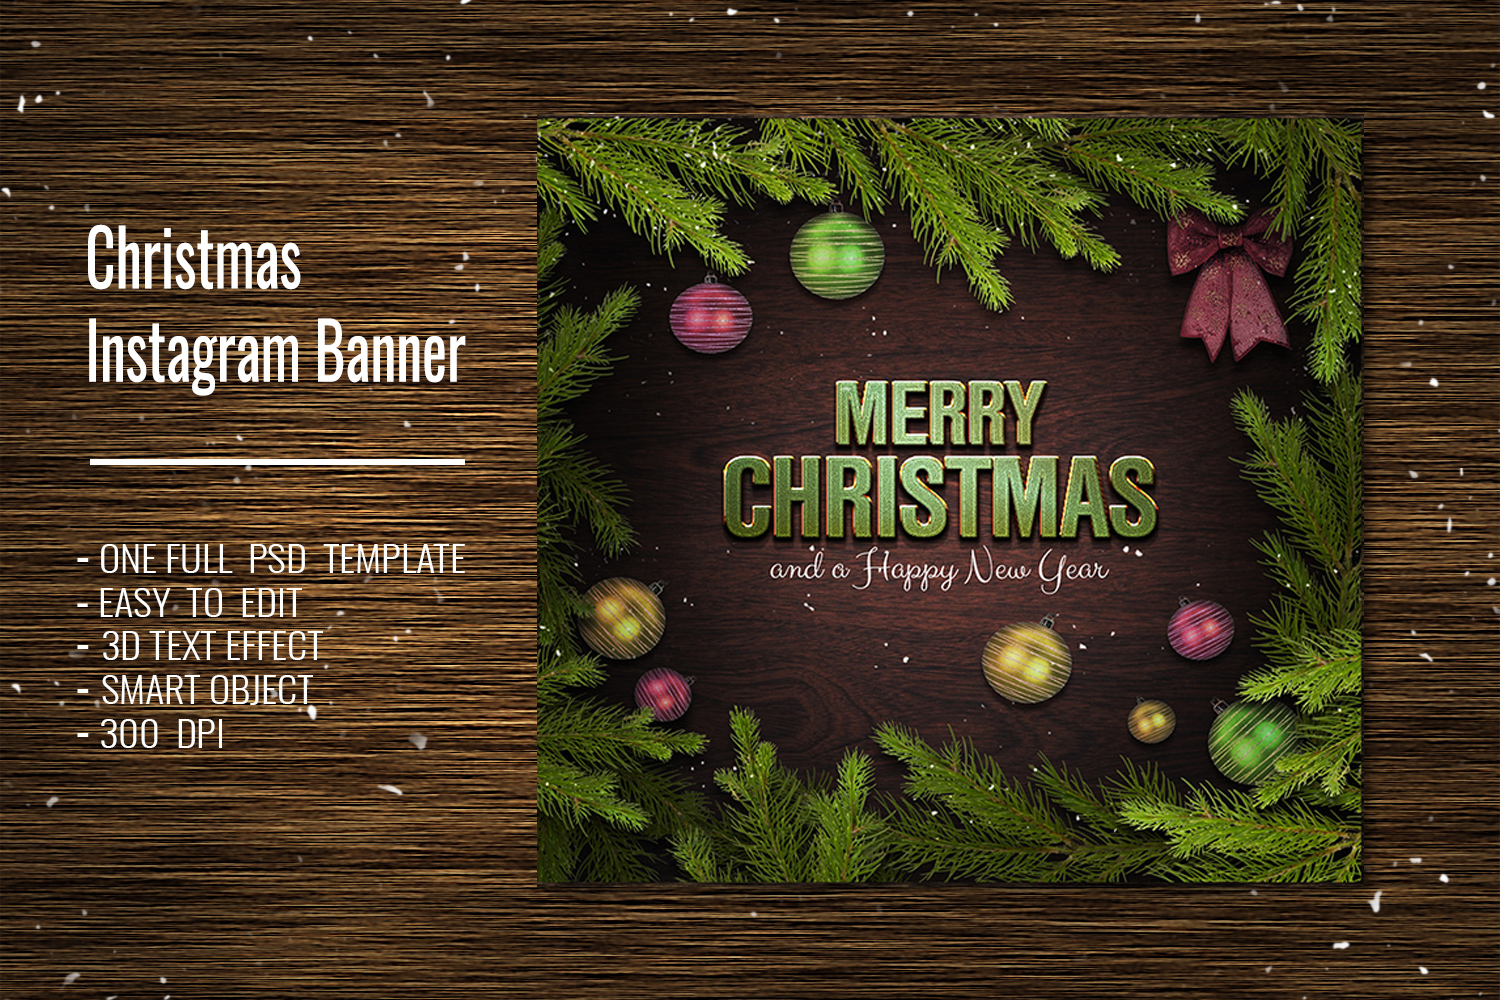 Christmas Facebook Timeline Cover & Instagram Banner PSD example image 4